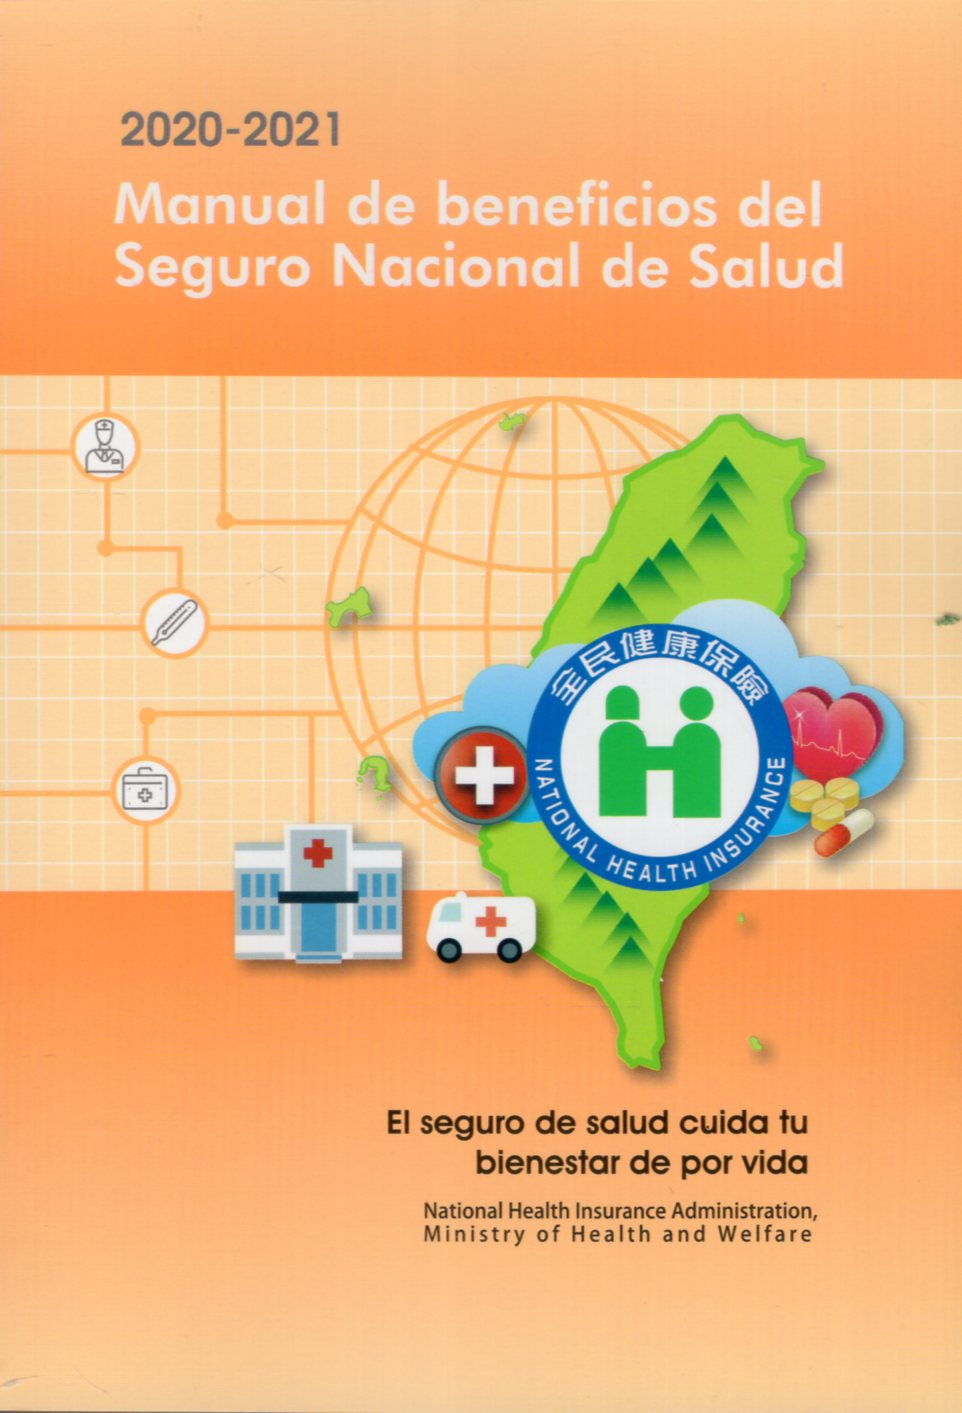 2020-2021 Manual de beneficios del Seguro Nacional de Salud